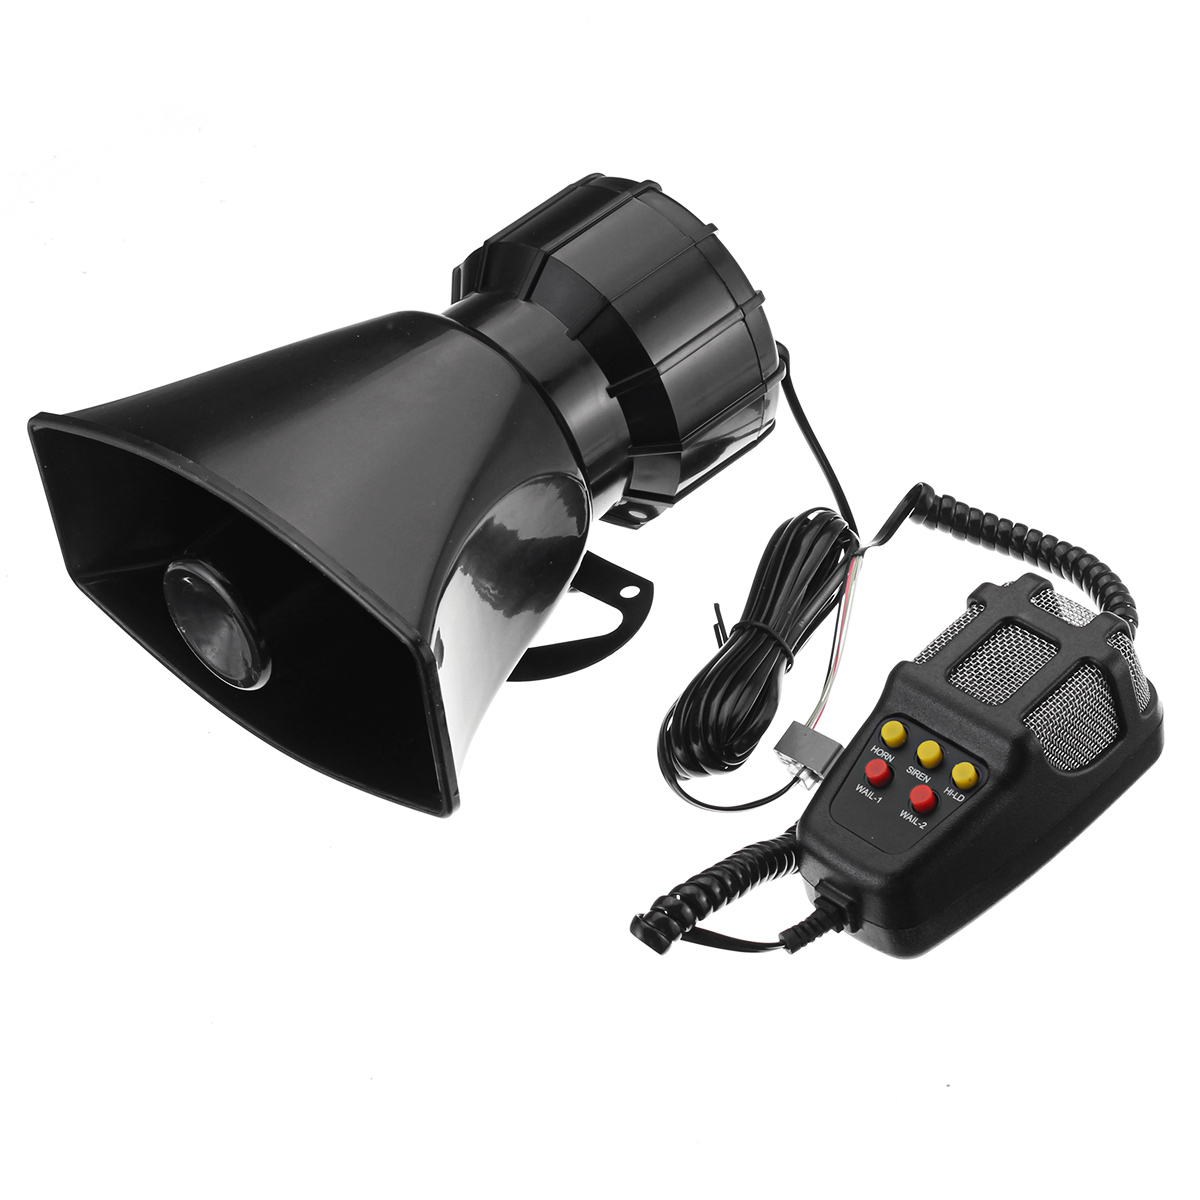 100W Car Warning Alarm 5 Sound Loudly Police Fire Siren Horn PA